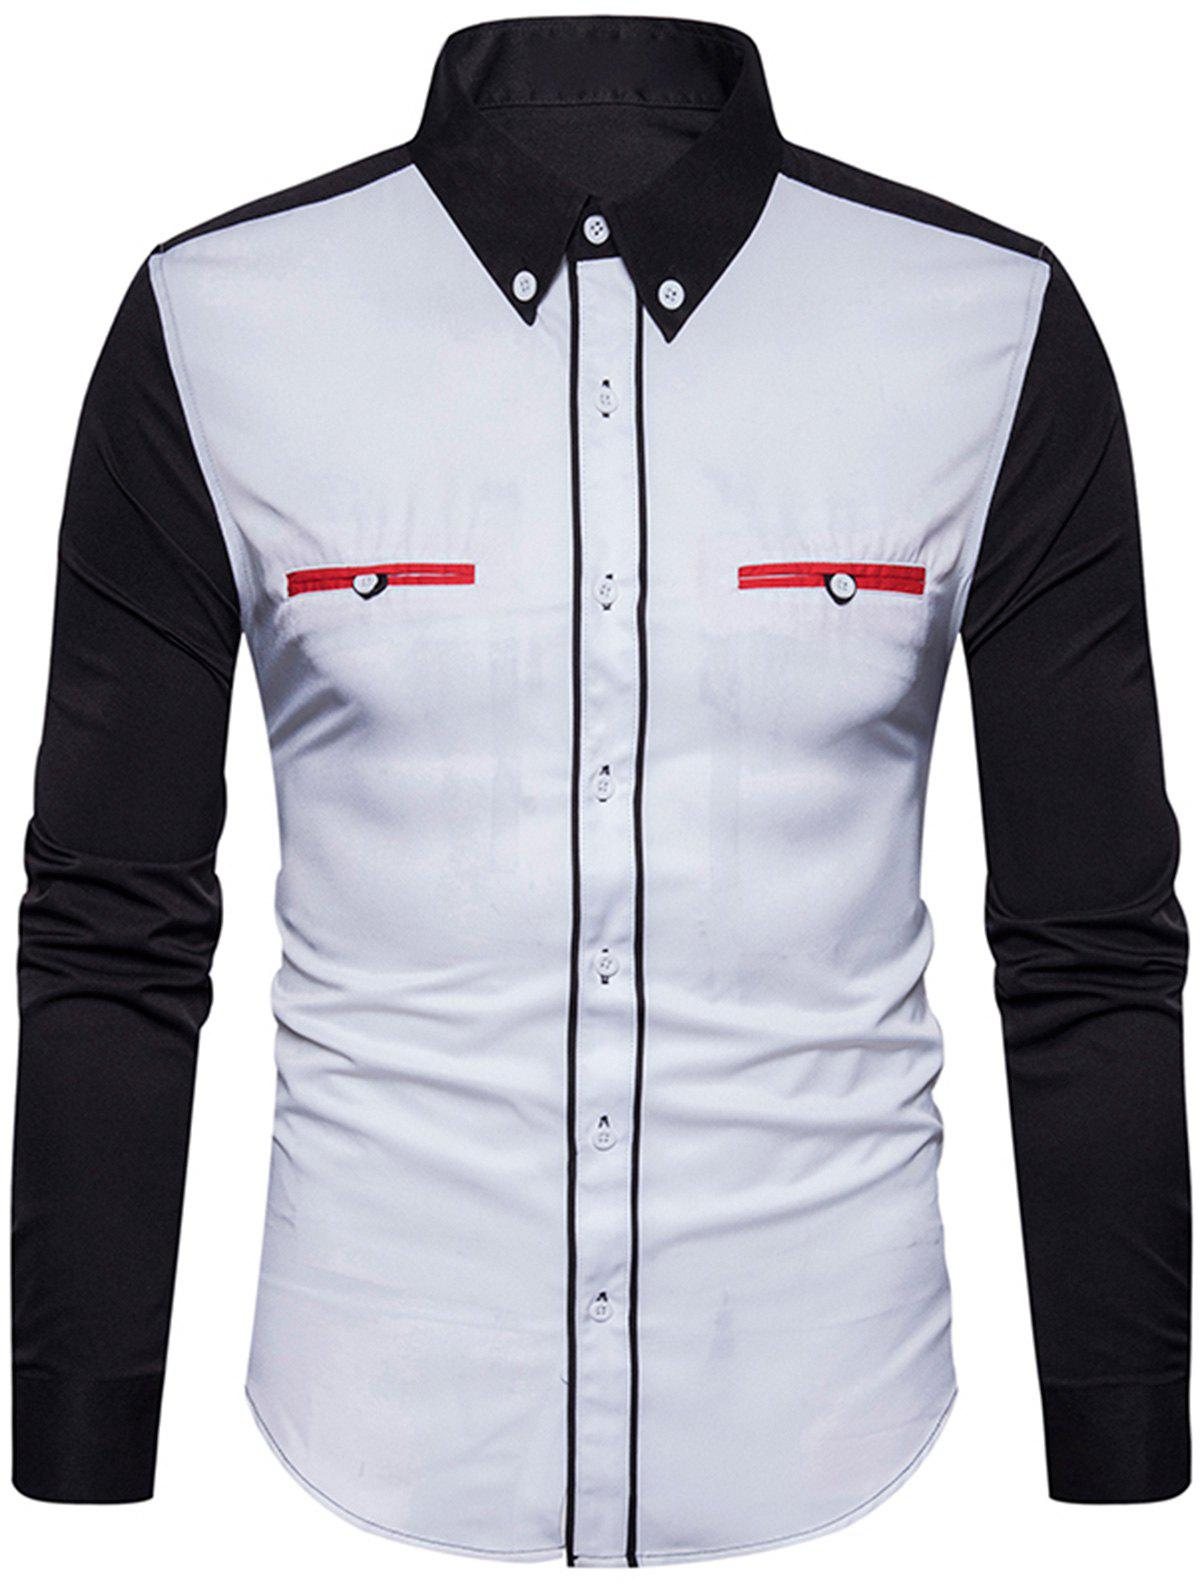 Edging Color Block Panel Button Down Shirt - Blanc XL